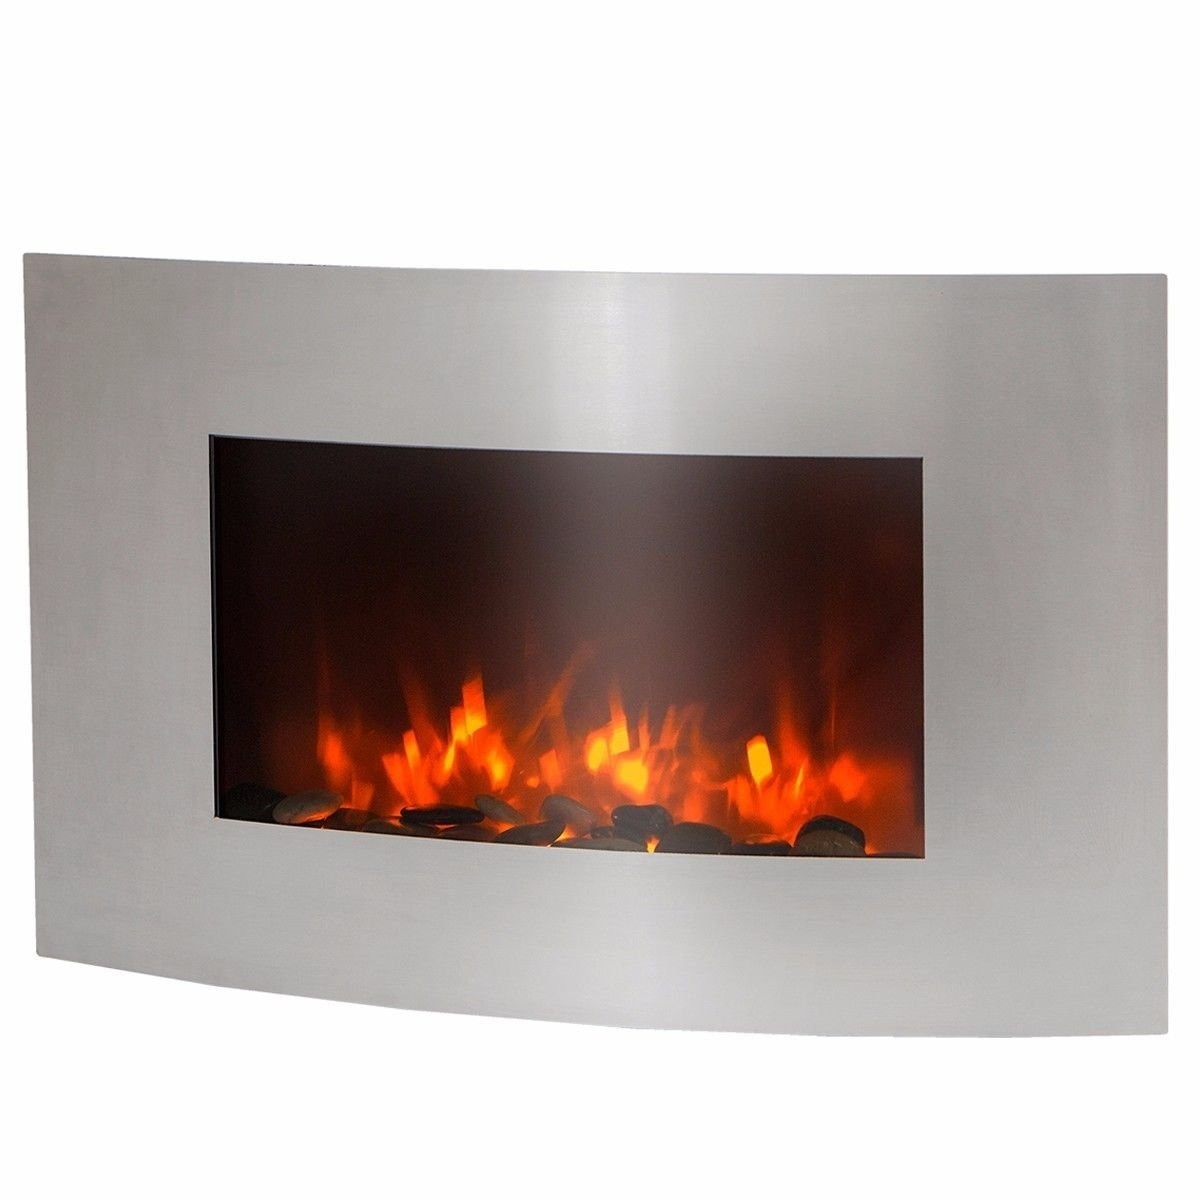 """New MTN-G 35"""" Large 1500 watt stainless Electric Wall Mount Fireplace Heater w/Remote"""